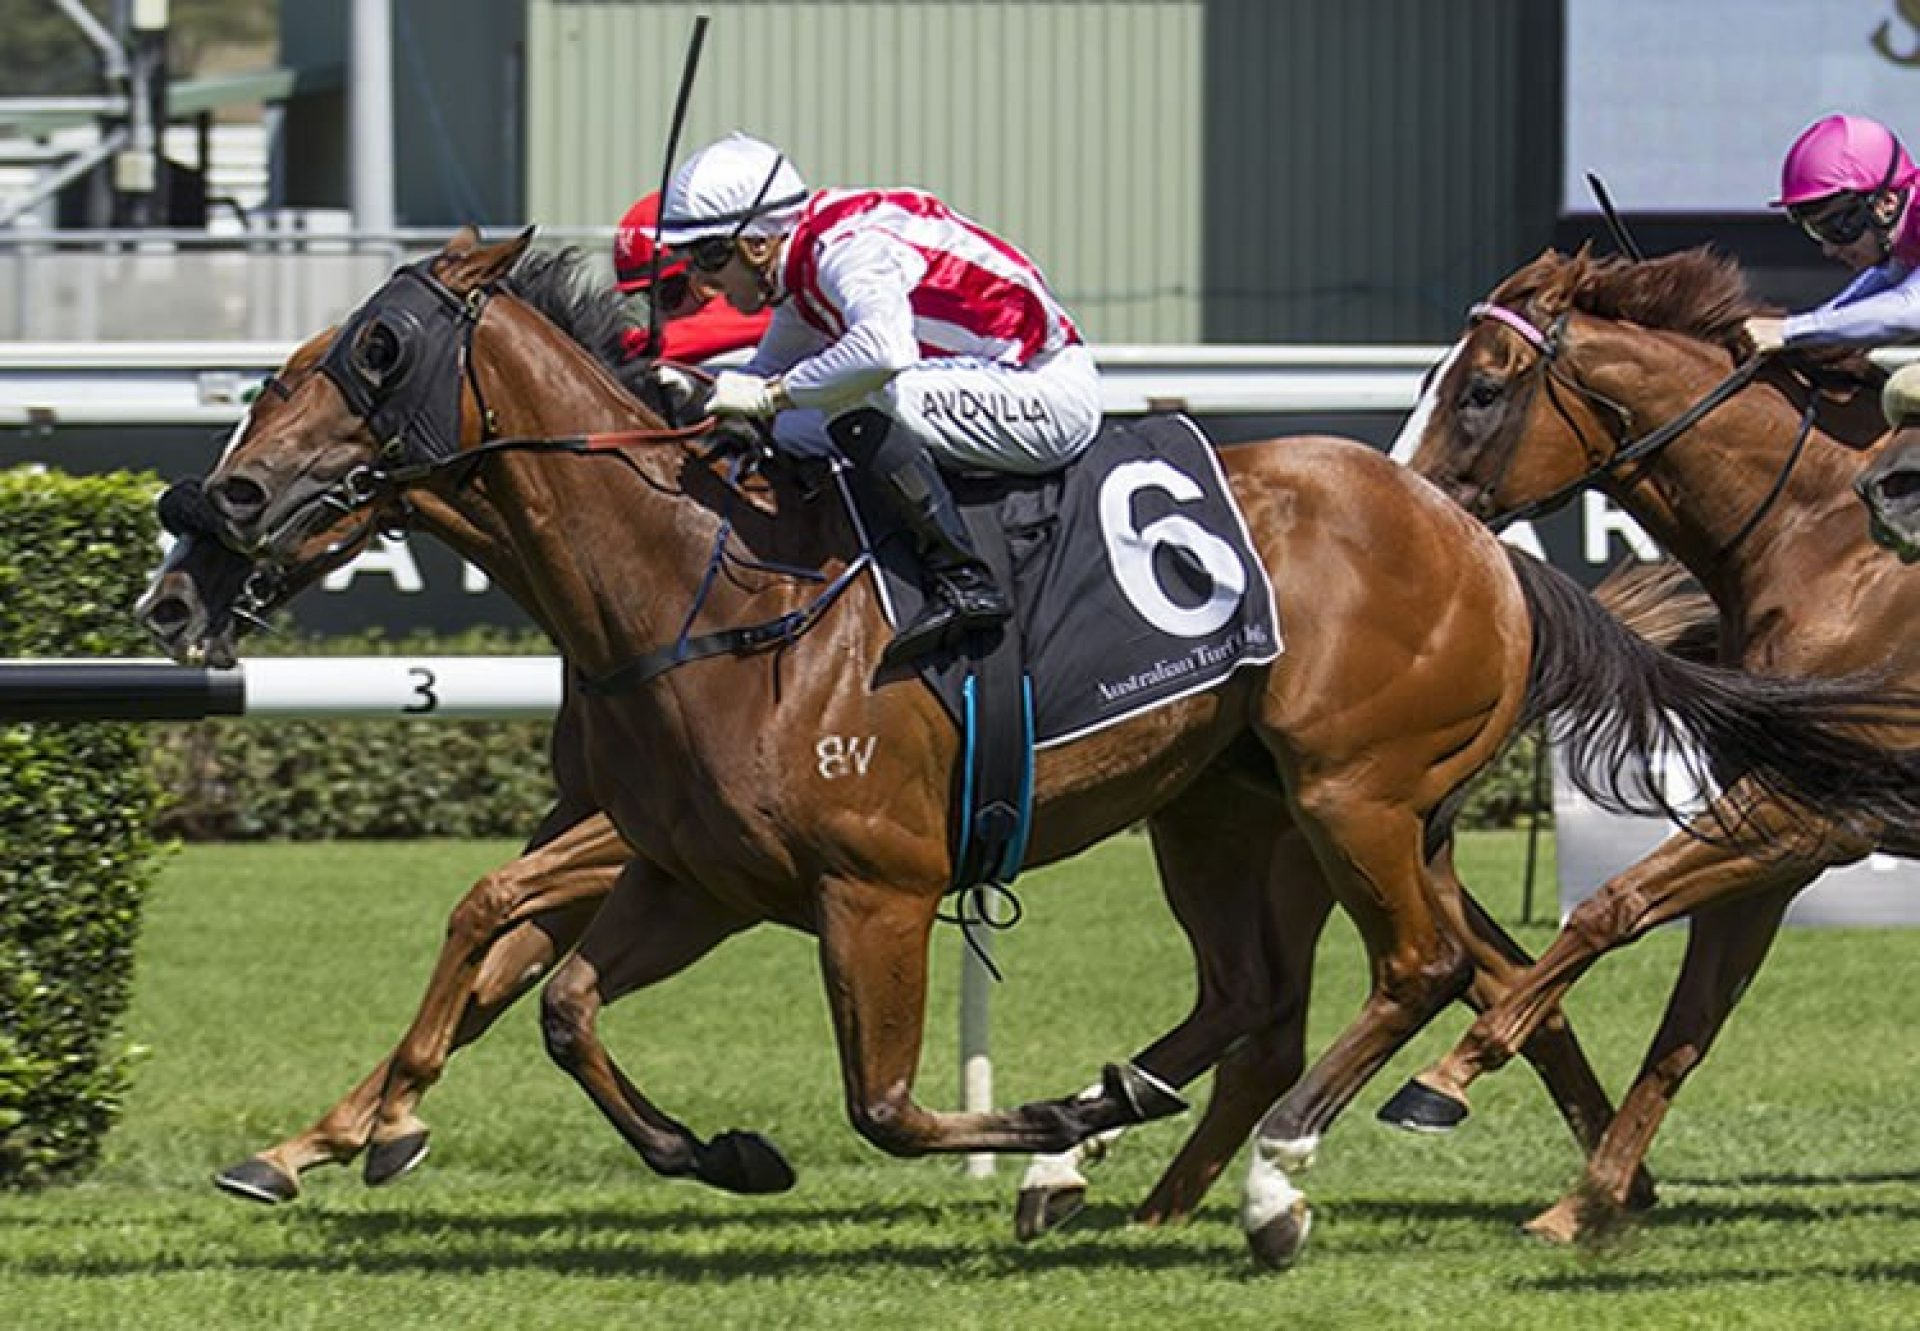 Kaepernick (Fastnet Rock) winning the G3 Southern Cross Stakes at Randwick